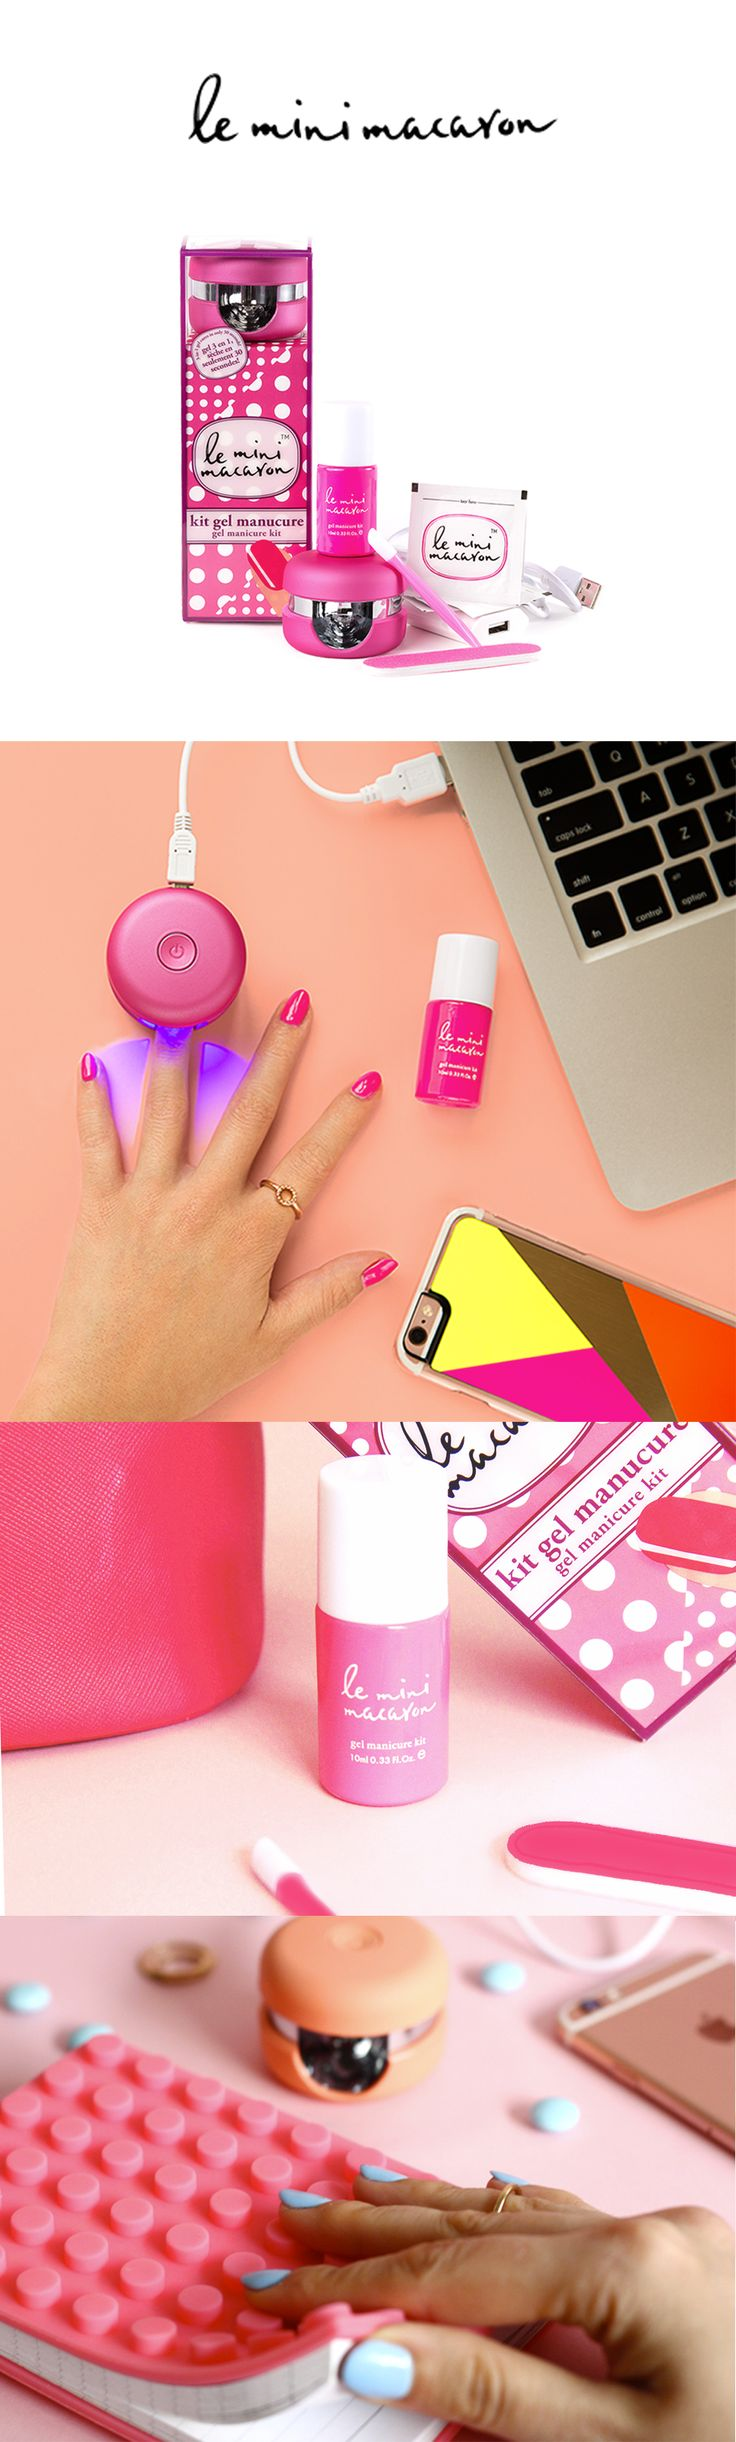 Getting gorgeous manis should fit your schedule. Check out how to get salon quality gel nails anytime, anywhere with Le Mini Macaron!